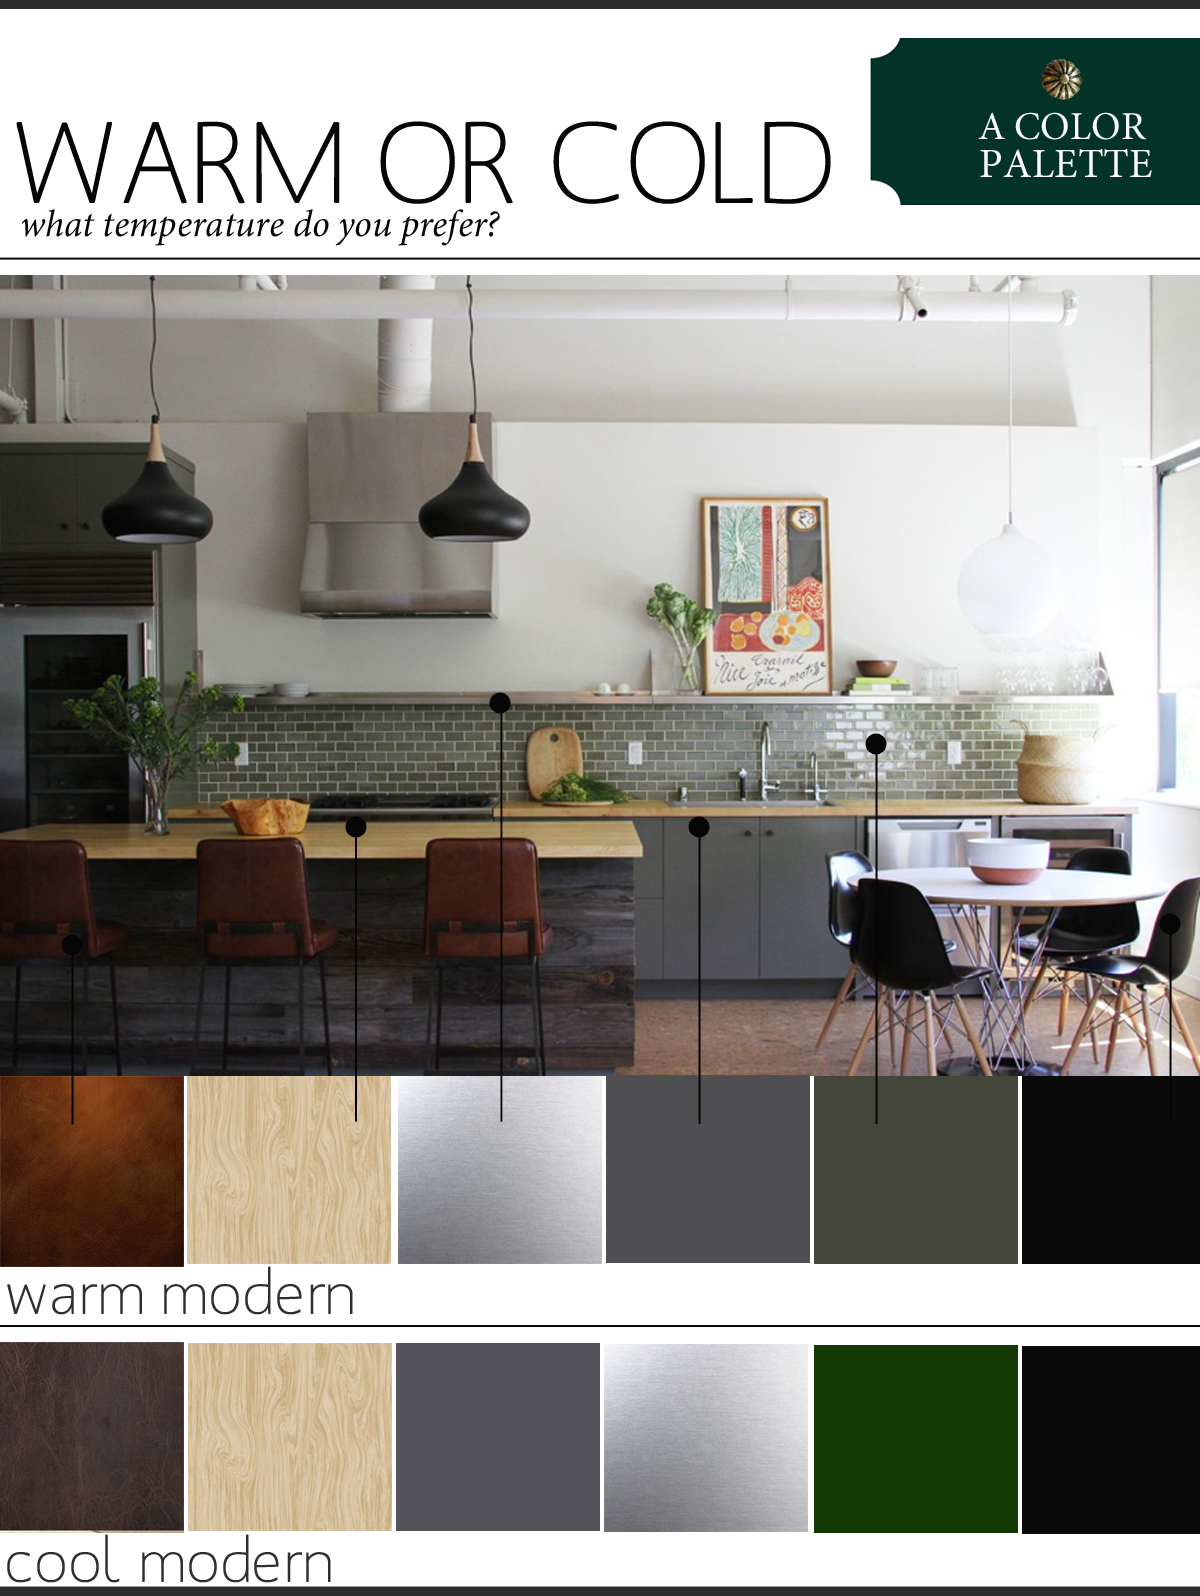 A Color Palette Warm Or Cool Modern The Anatomy Of Design